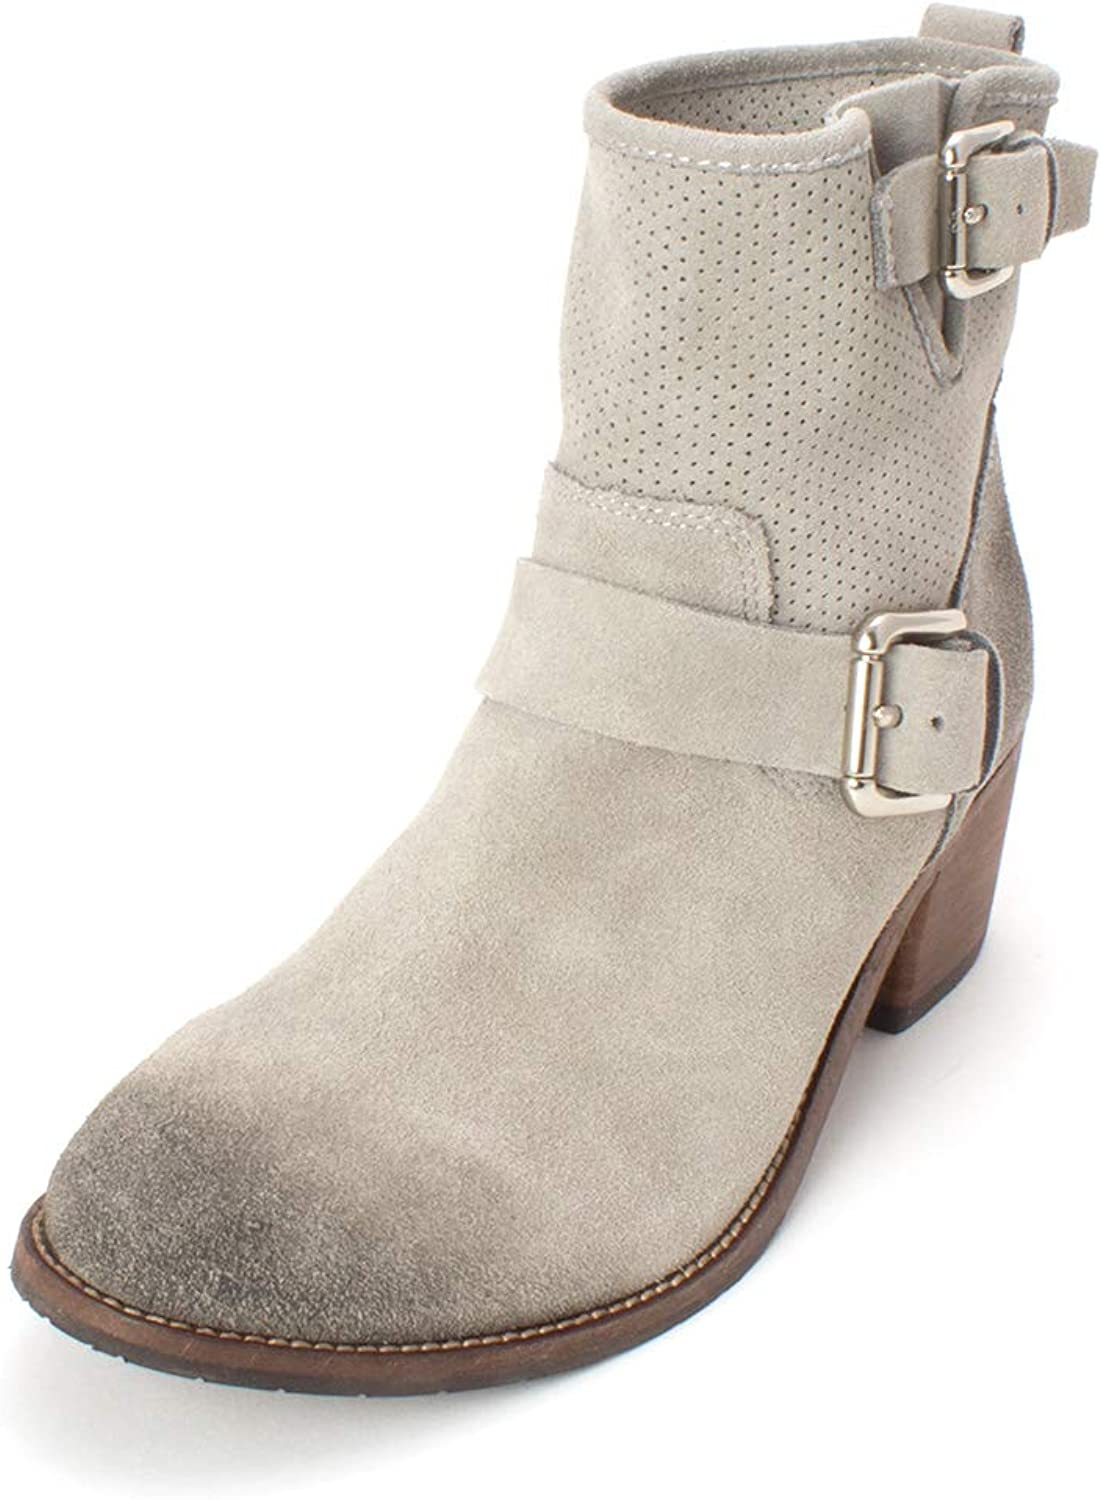 Donald J Pliner Womens Willow Leather Closed Toe Mid-Calf Fashion Boots